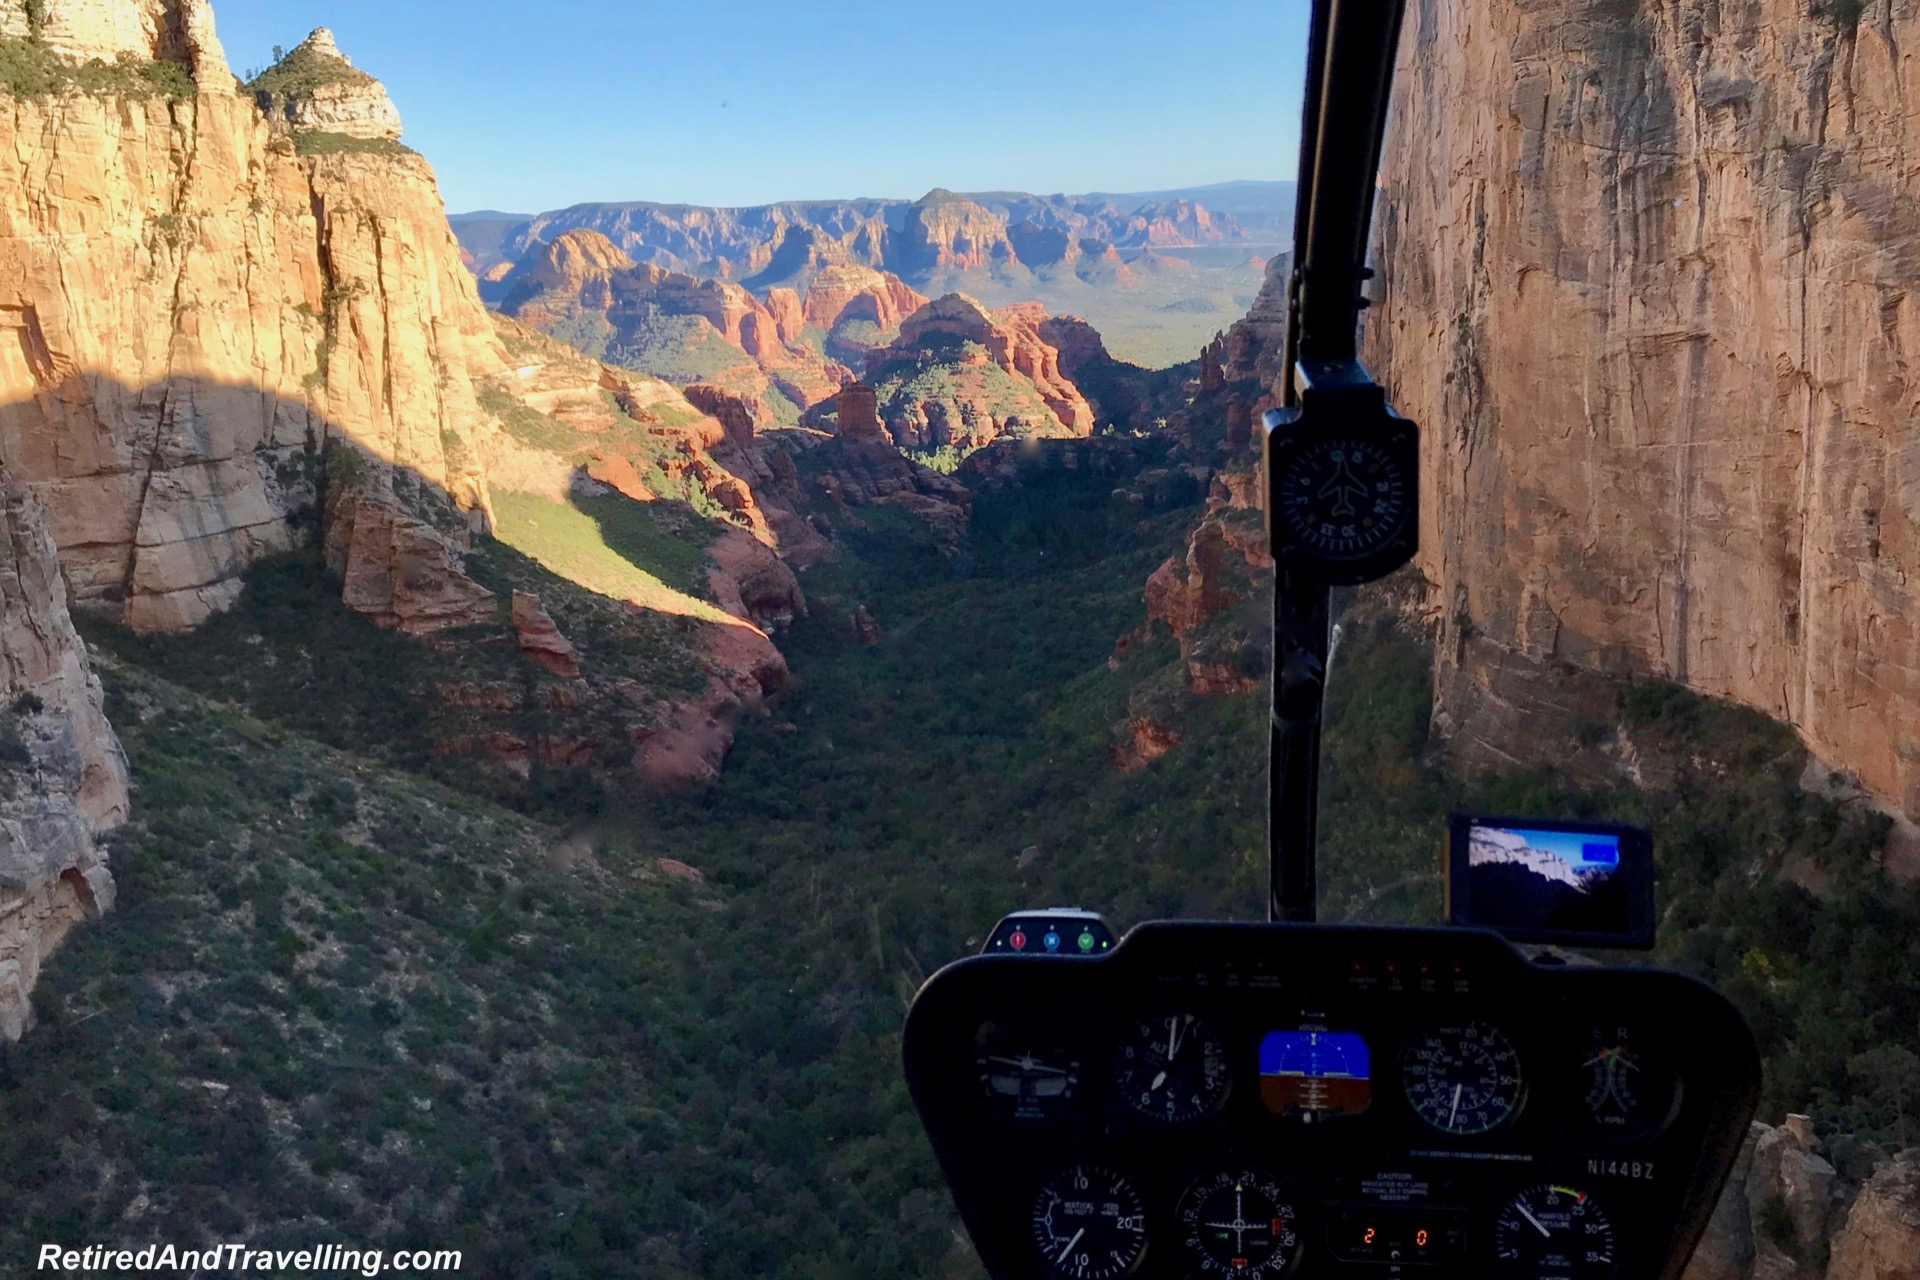 Canyon Views - Helicopter Ride Over The Sedona Valley.jpg